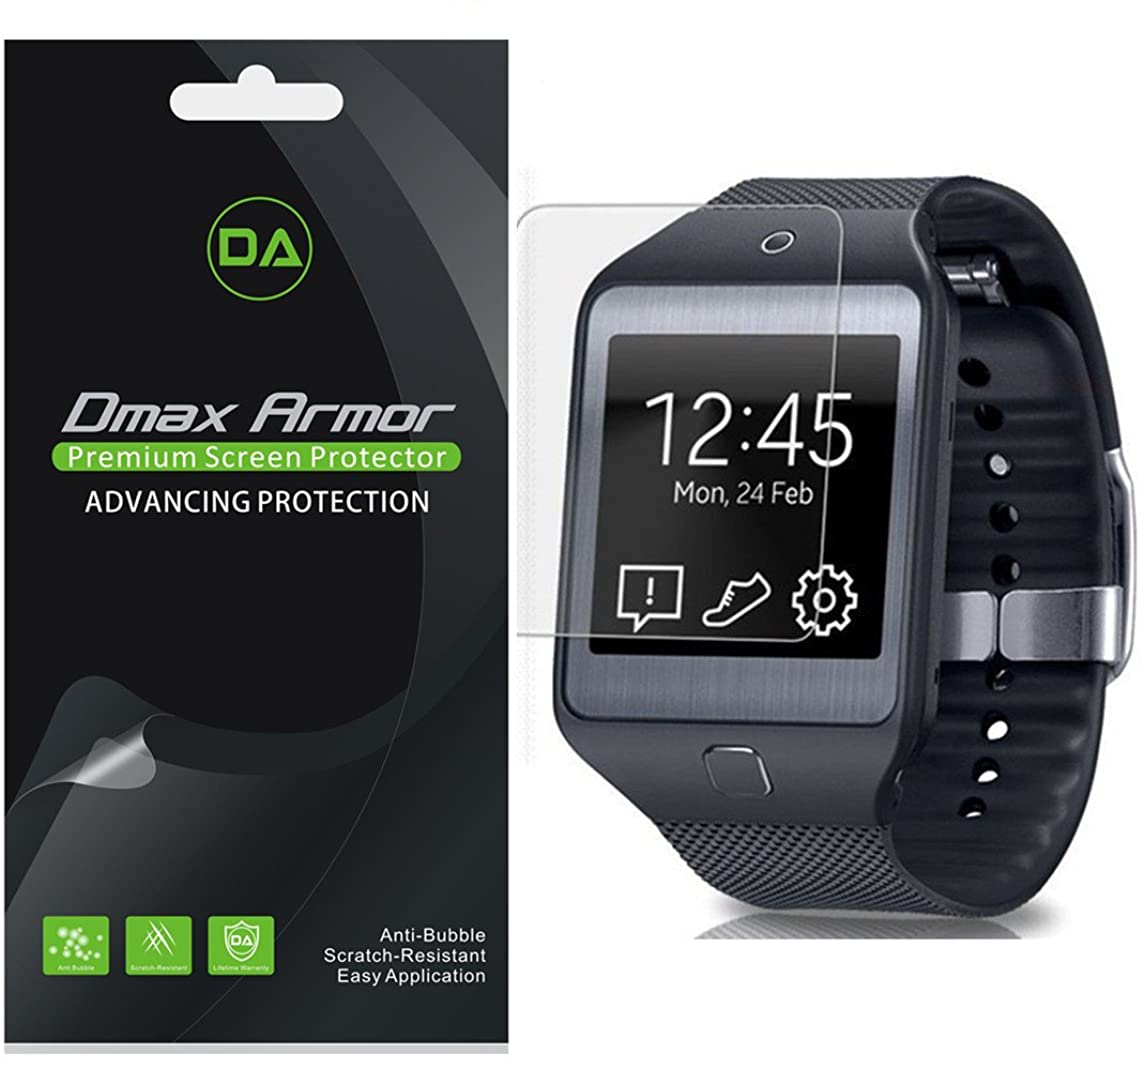 [3-Pack] Dmax Armor for Samsung Gear 2 Neo Screen Protector Anti-Bubble High Definition Clear Shield - Lifetime Replacement